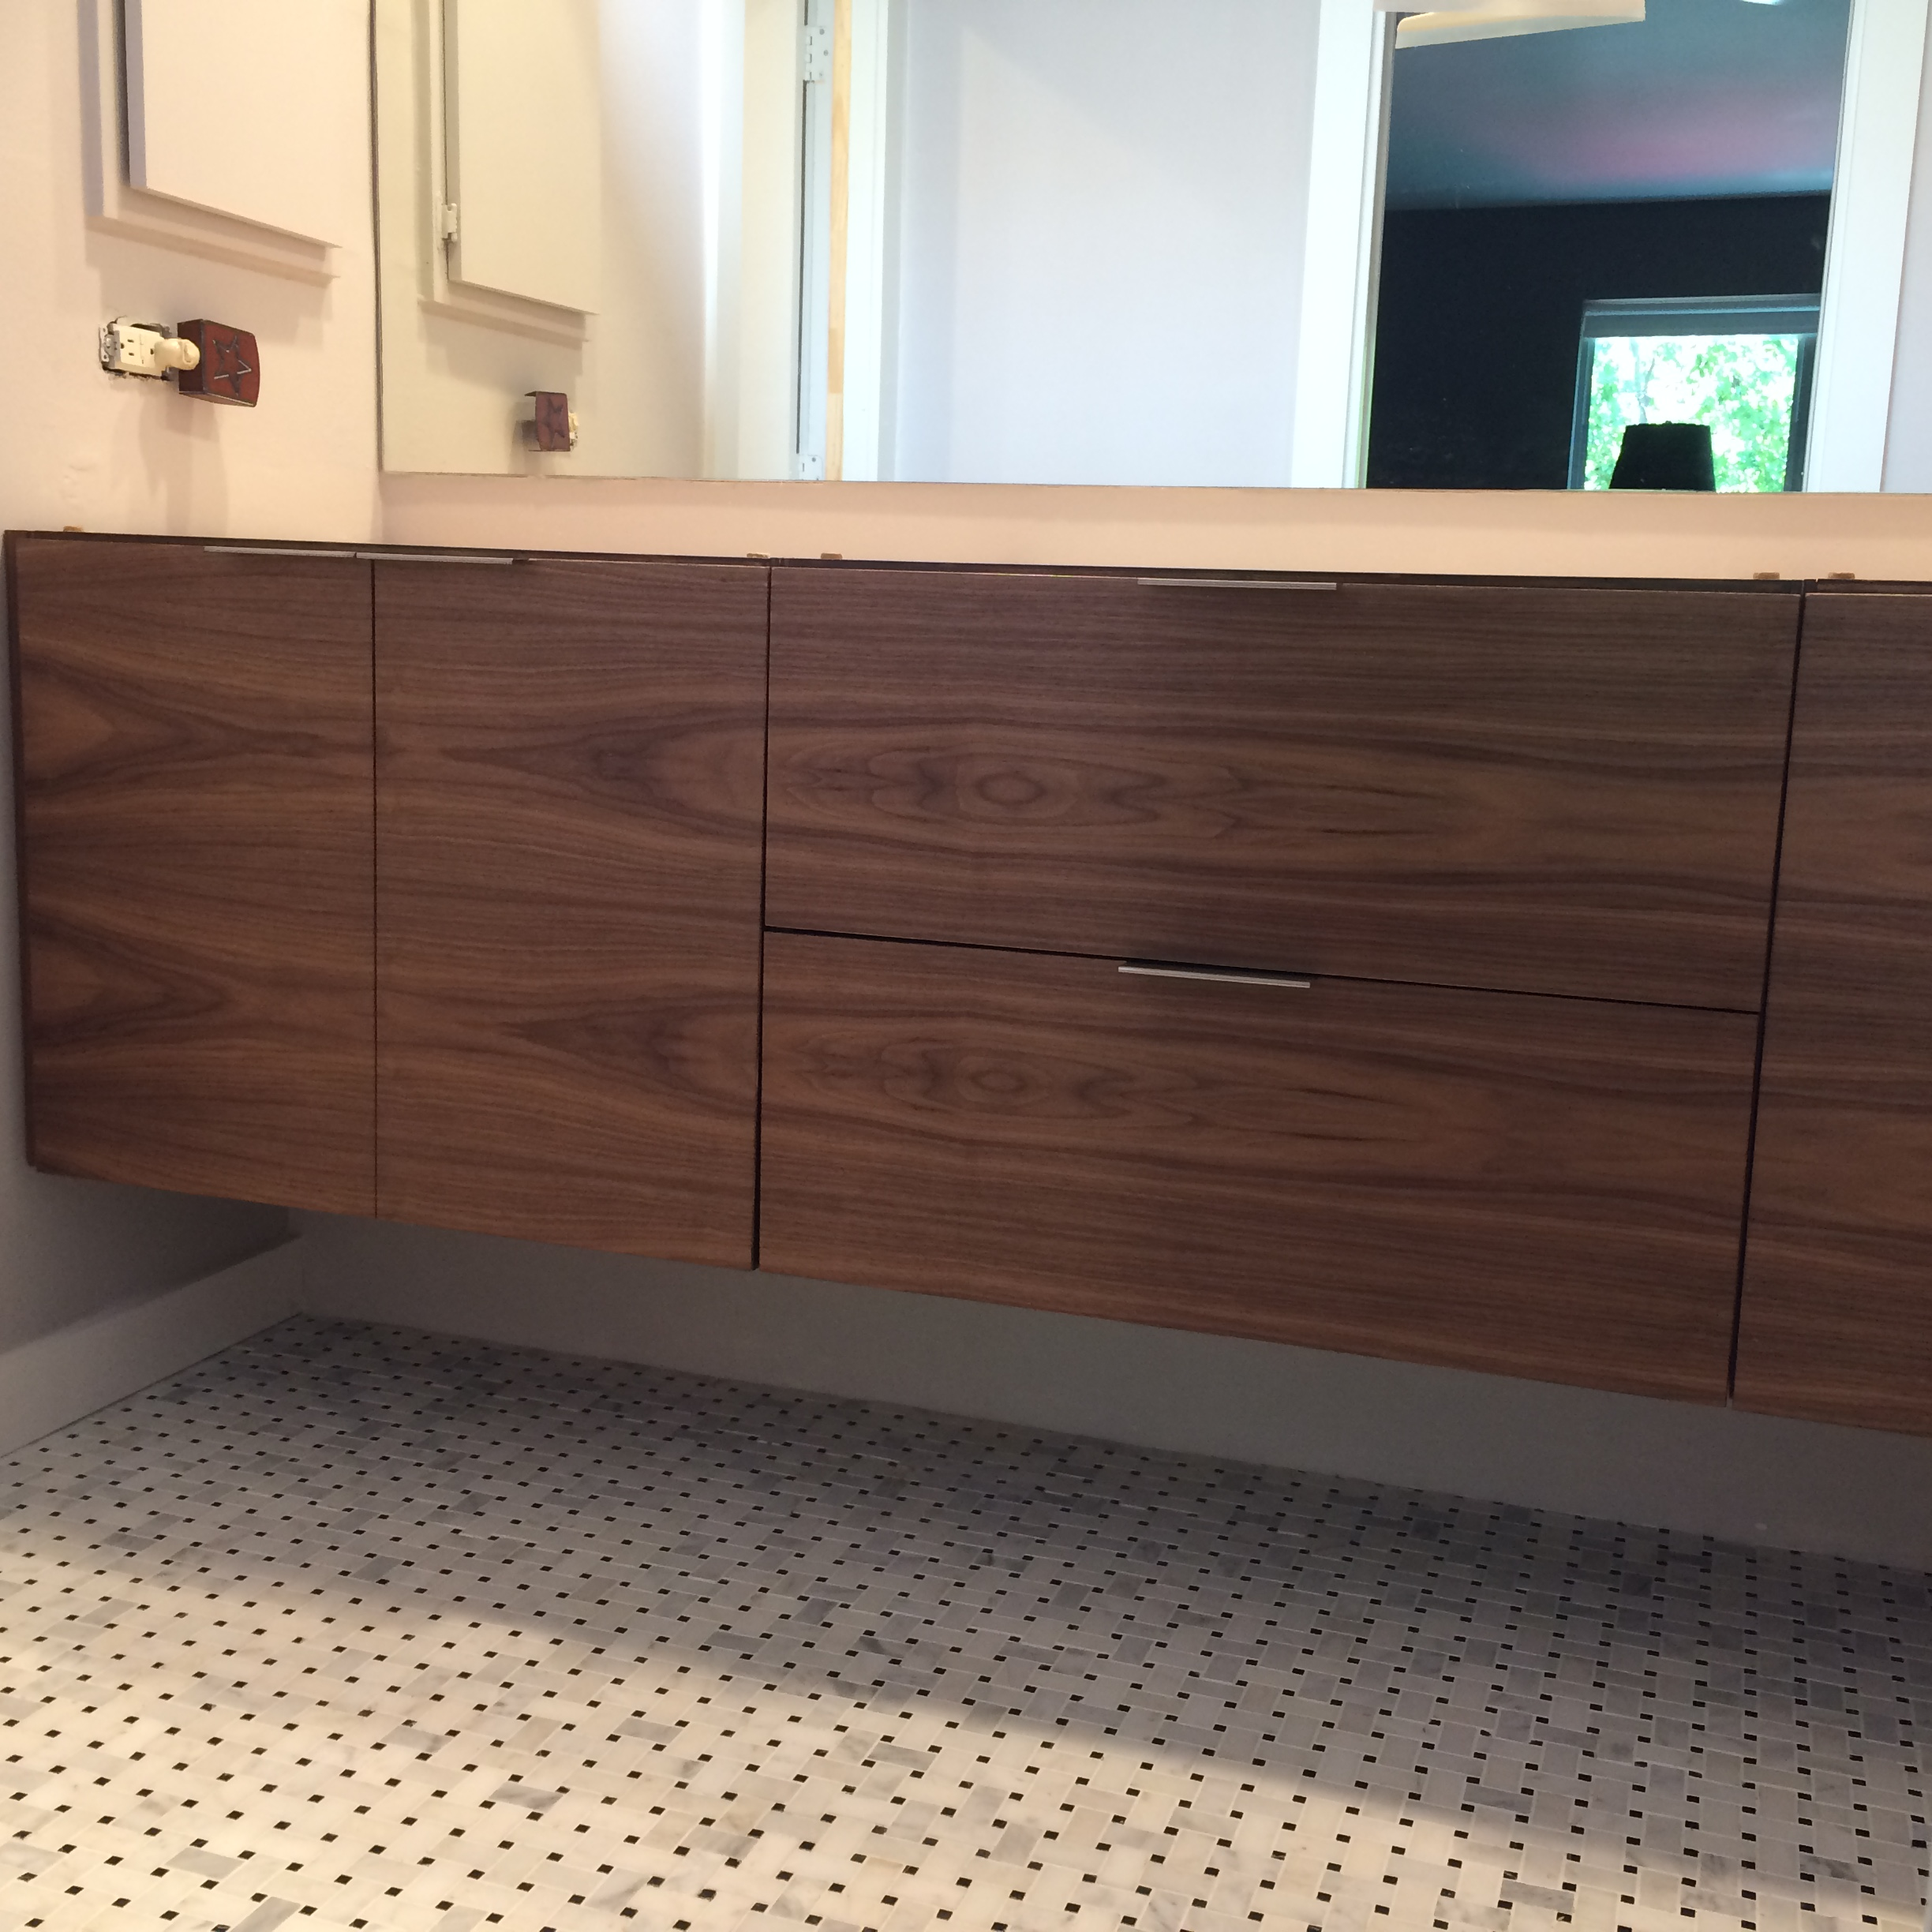 Walnut floating vanity with horizontal grain